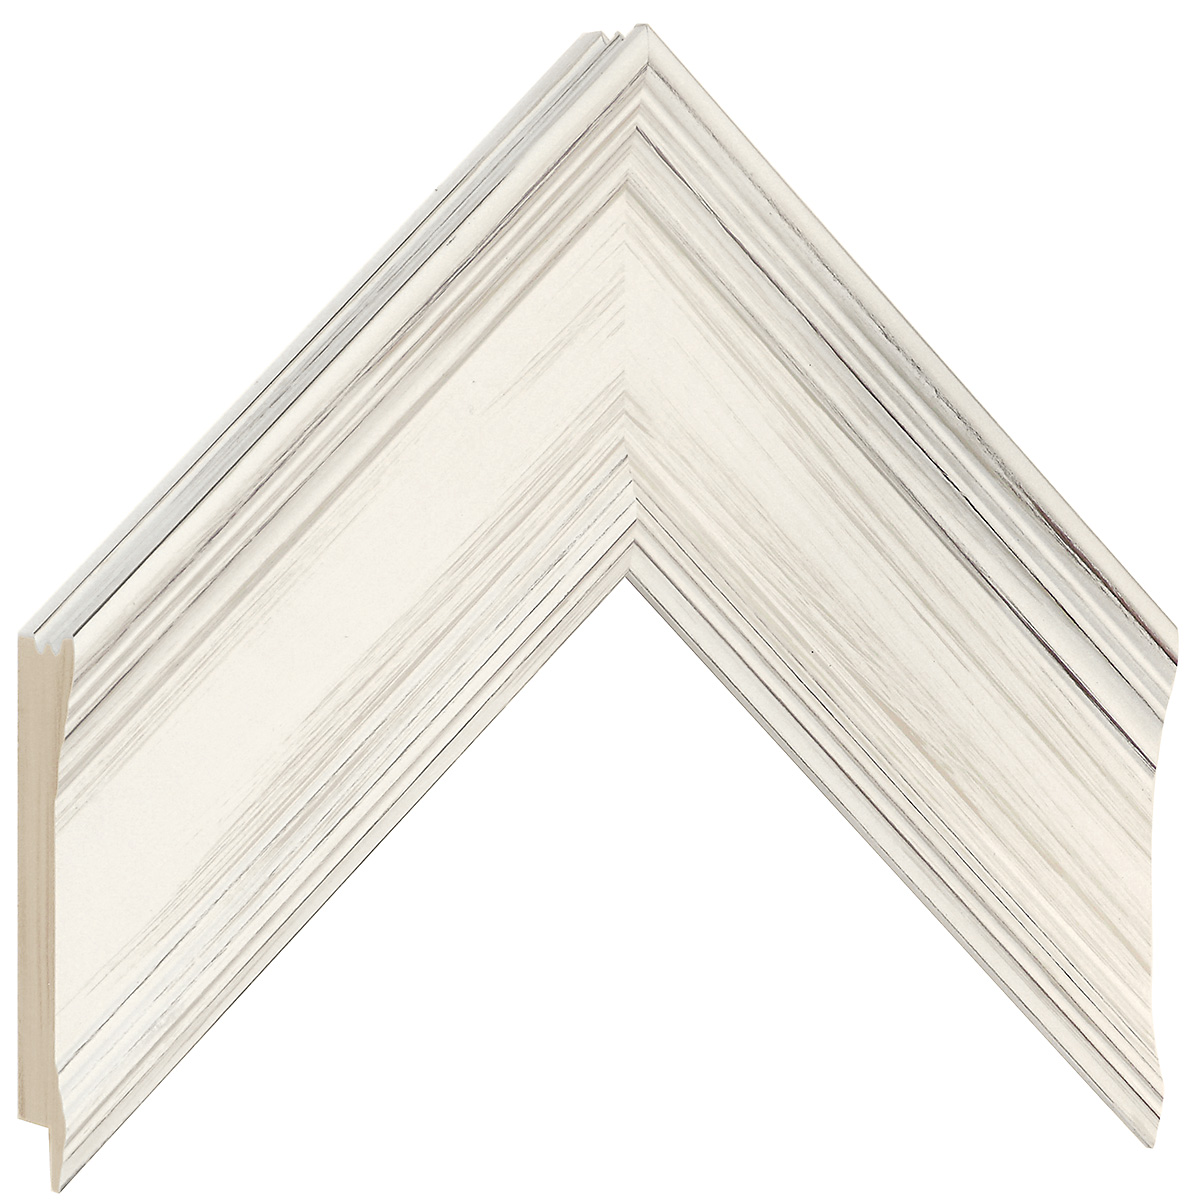 Moulding ajous width 68mm height 30 - Cream finish